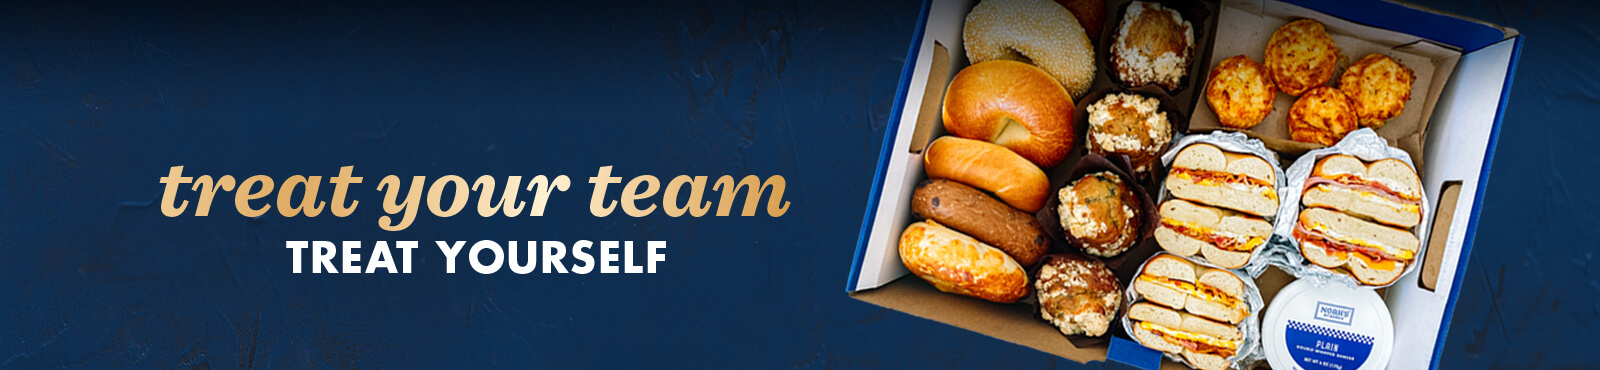 Treat your team, treat yourself - get an Amazon gift card when you order Noah's catering